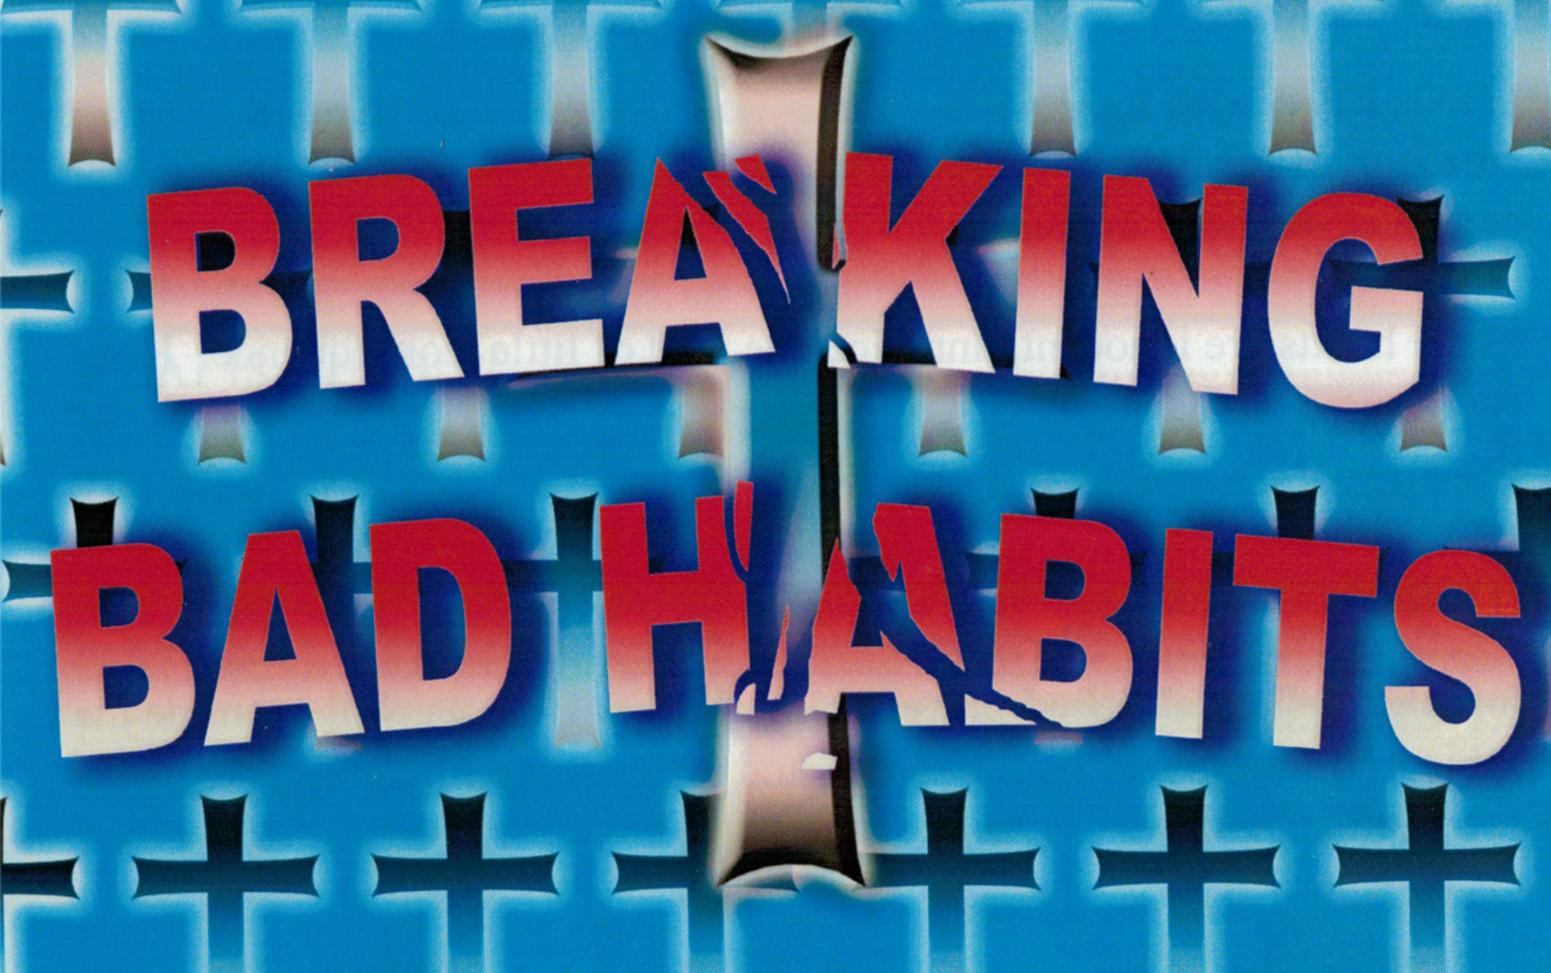 Breaking Bad Habits Christian Equippers International